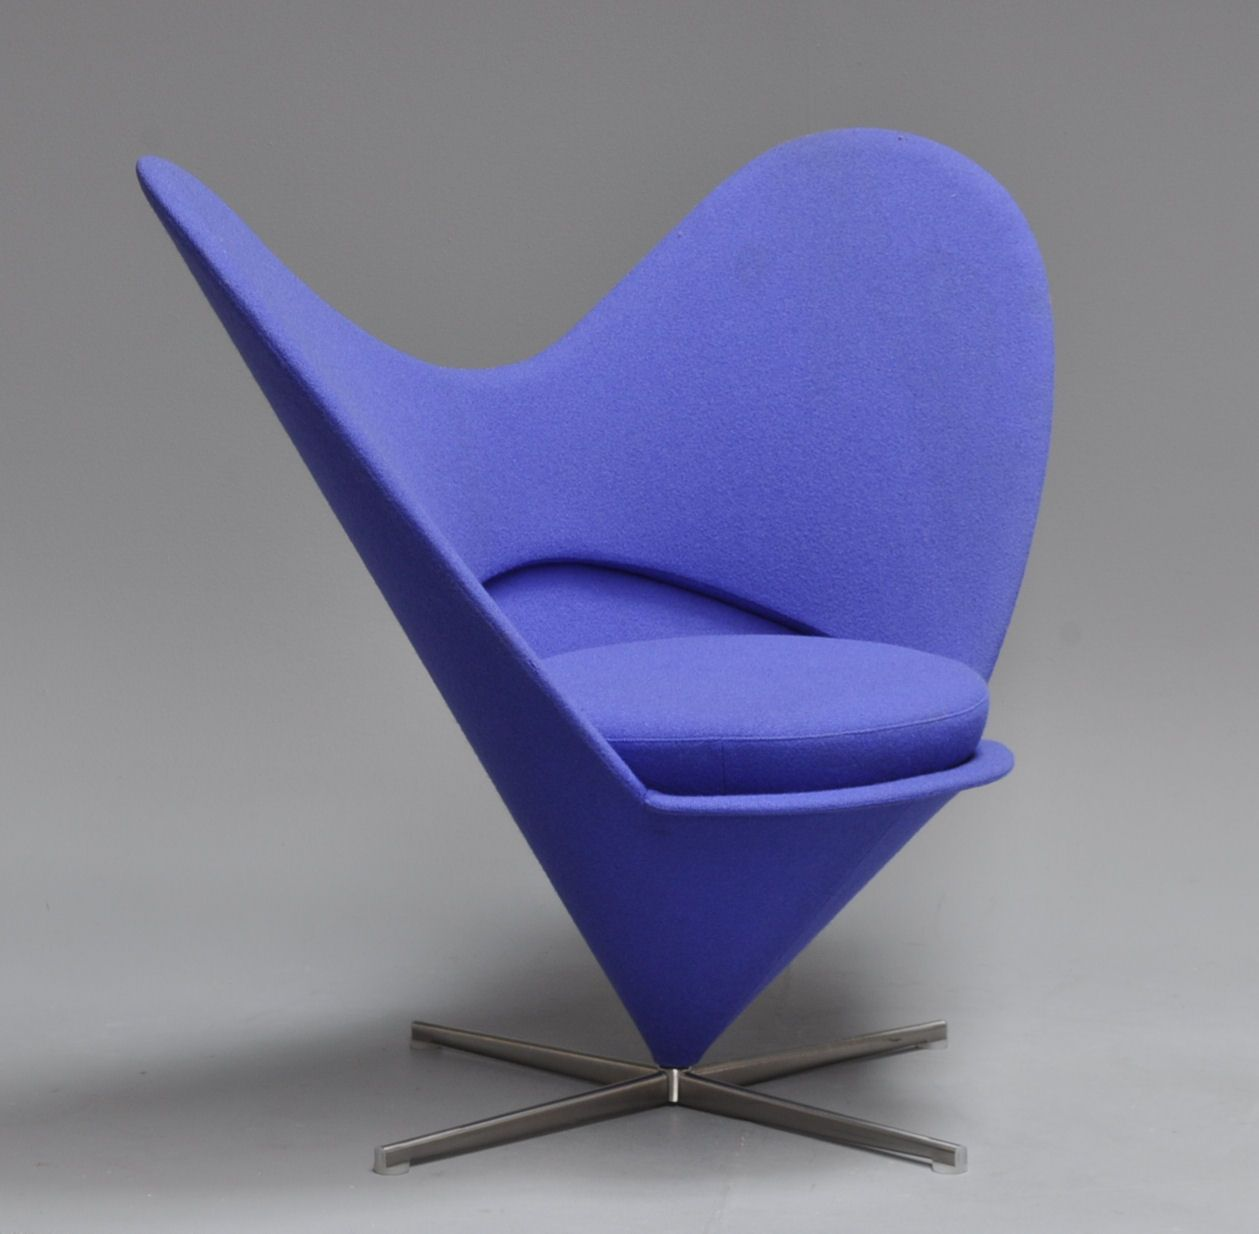 Heart Cone Chair Heart Chair By Verner Panton Produced By